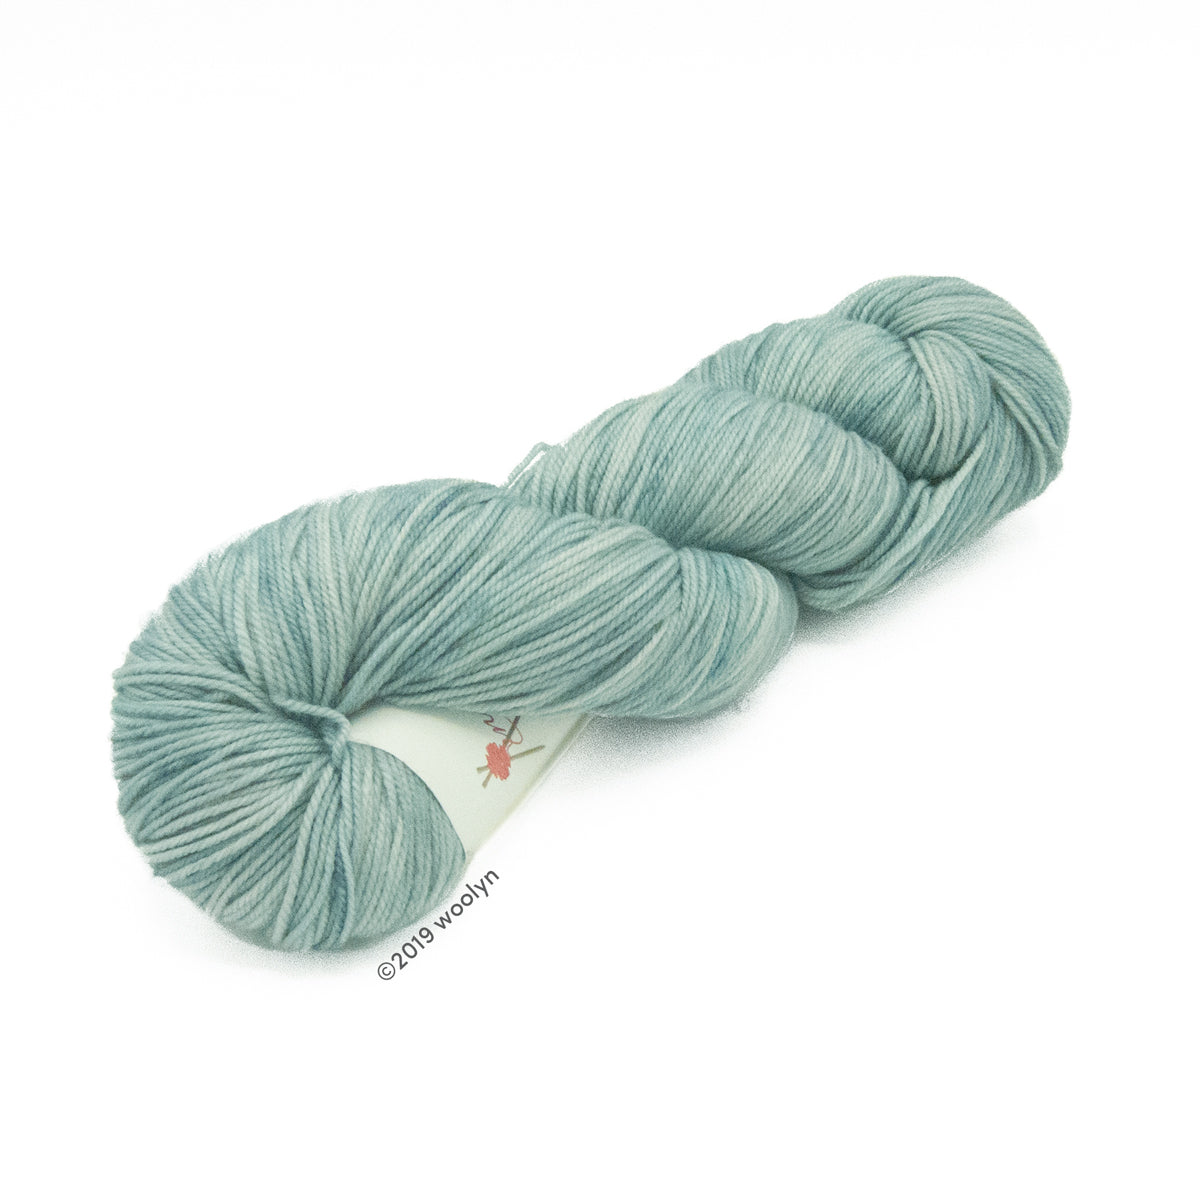 Hand dyed  fingering weight yarn in cool light green tonal shades twisted into a skein.